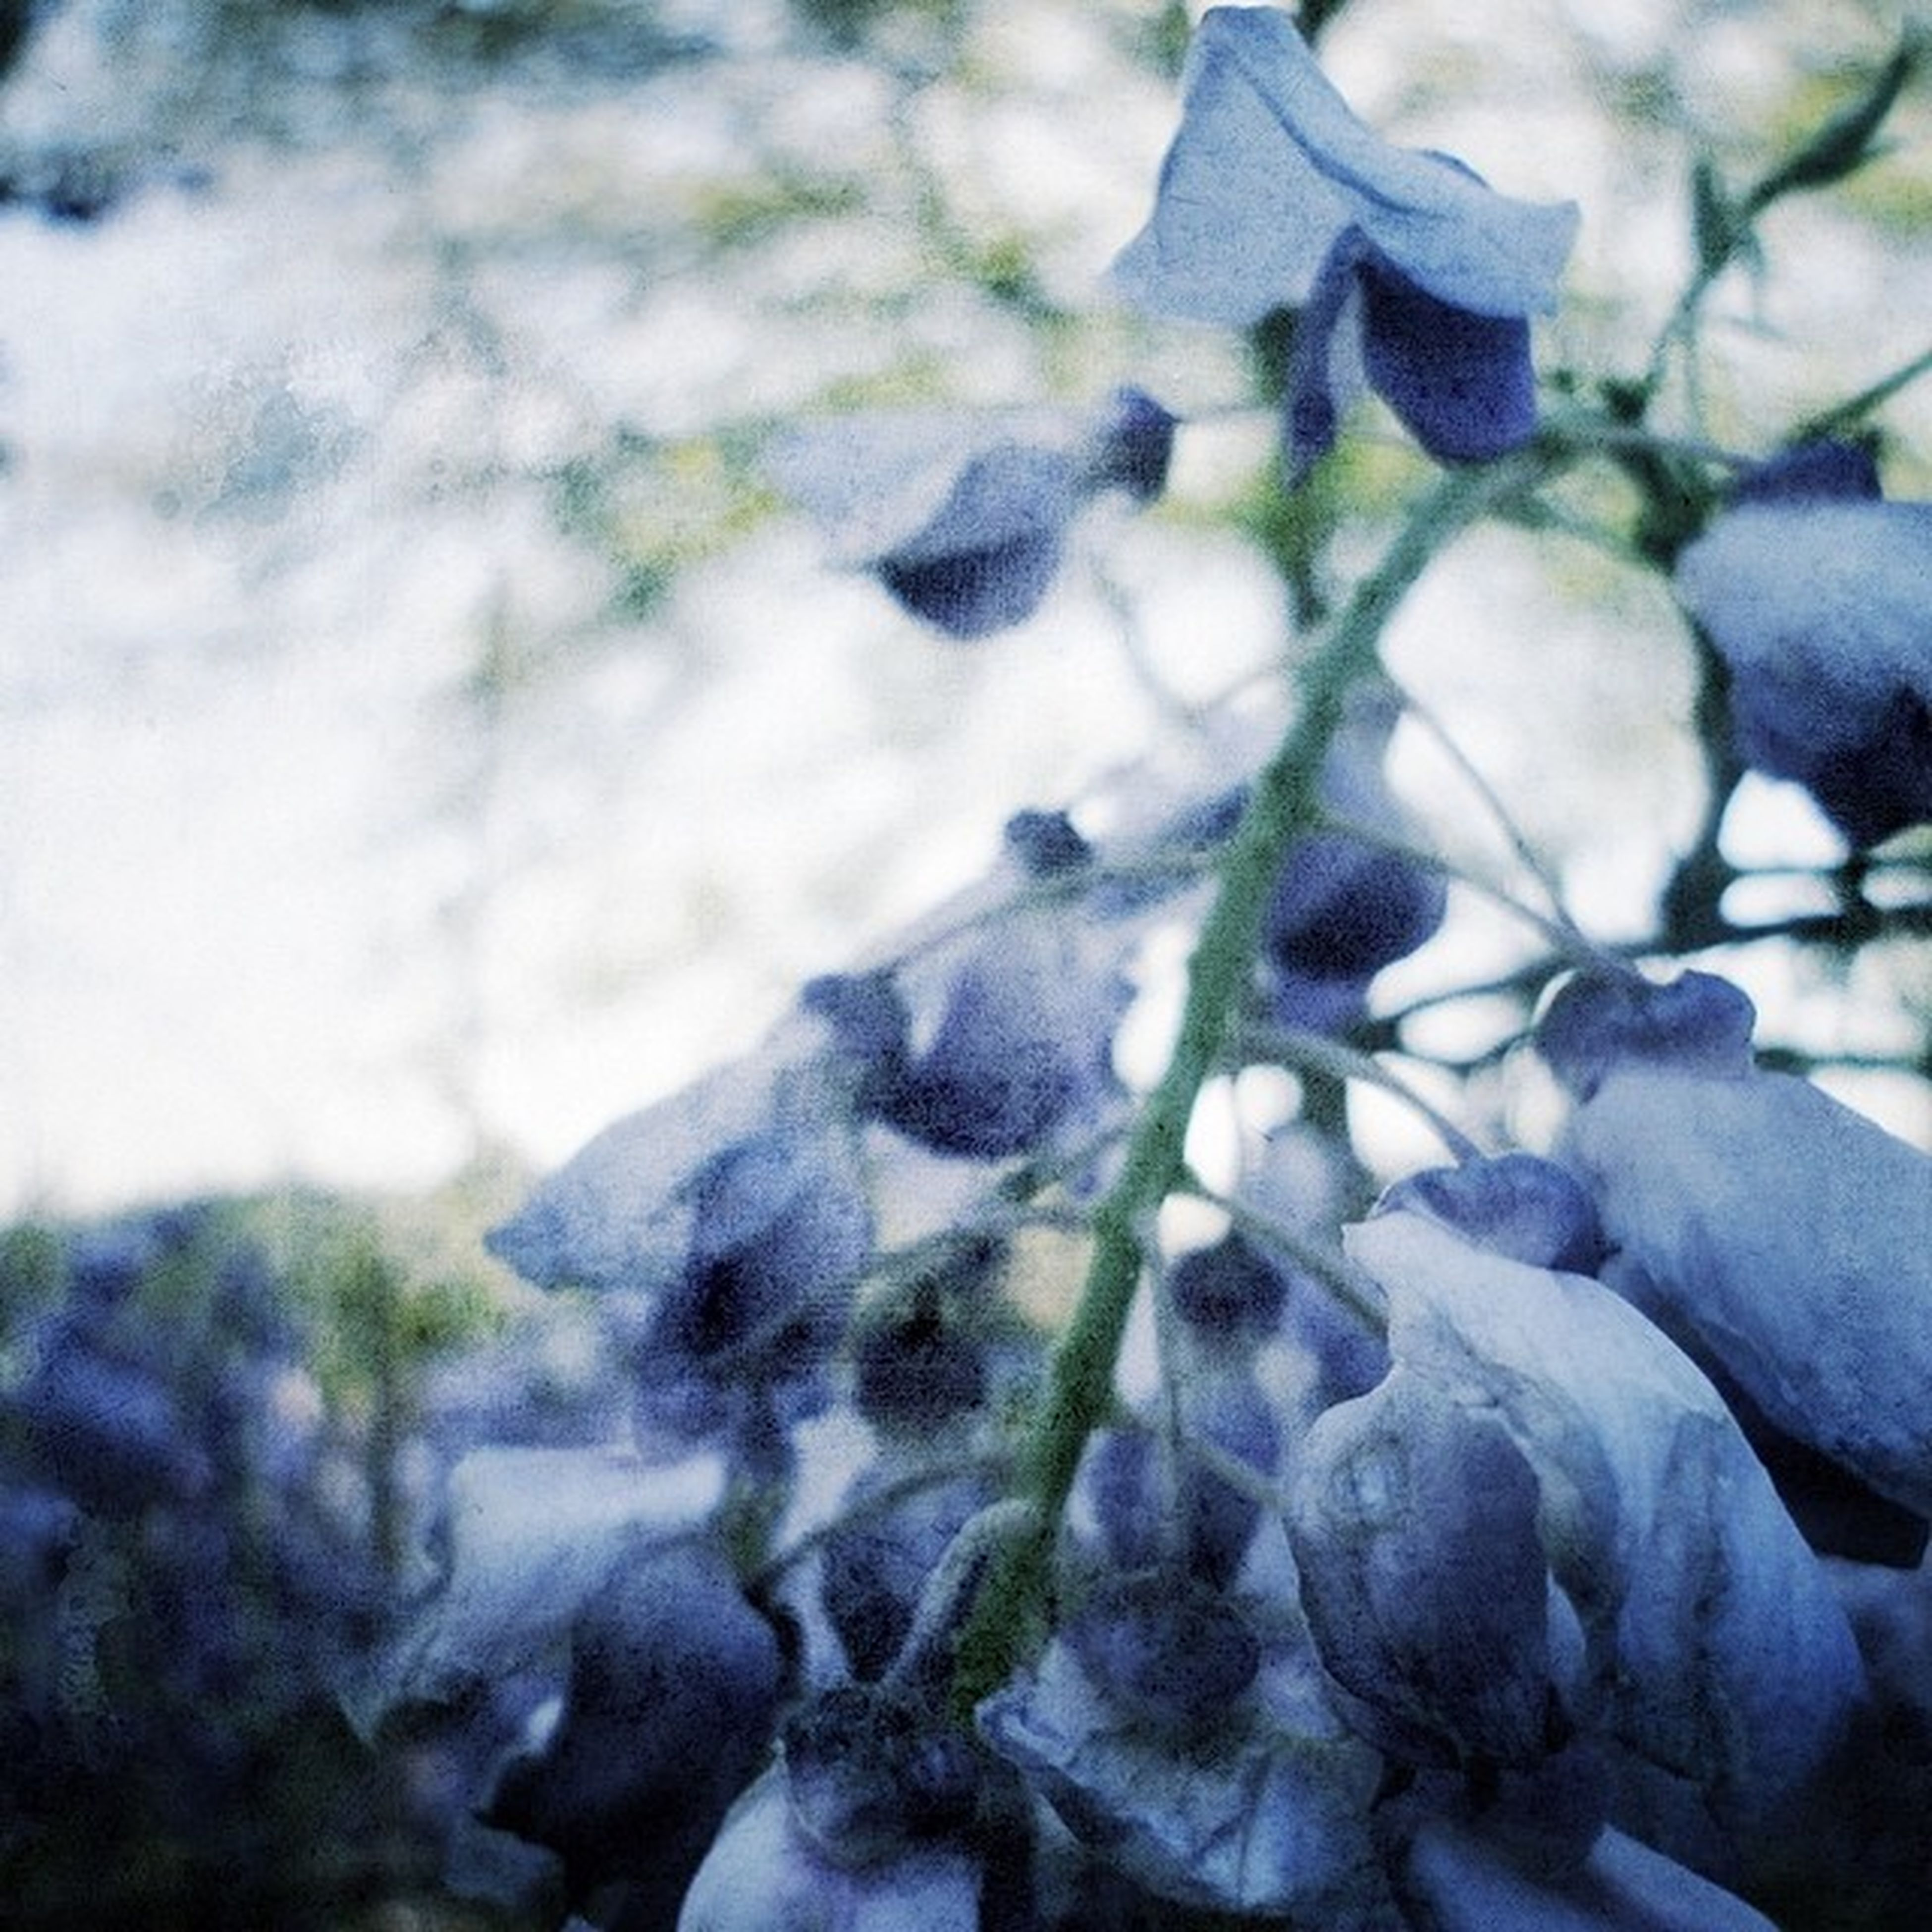 snow, winter, cold temperature, focus on foreground, season, close-up, frozen, nature, weather, covering, beauty in nature, selective focus, tranquility, rock - object, white color, day, outdoors, field, covered, no people